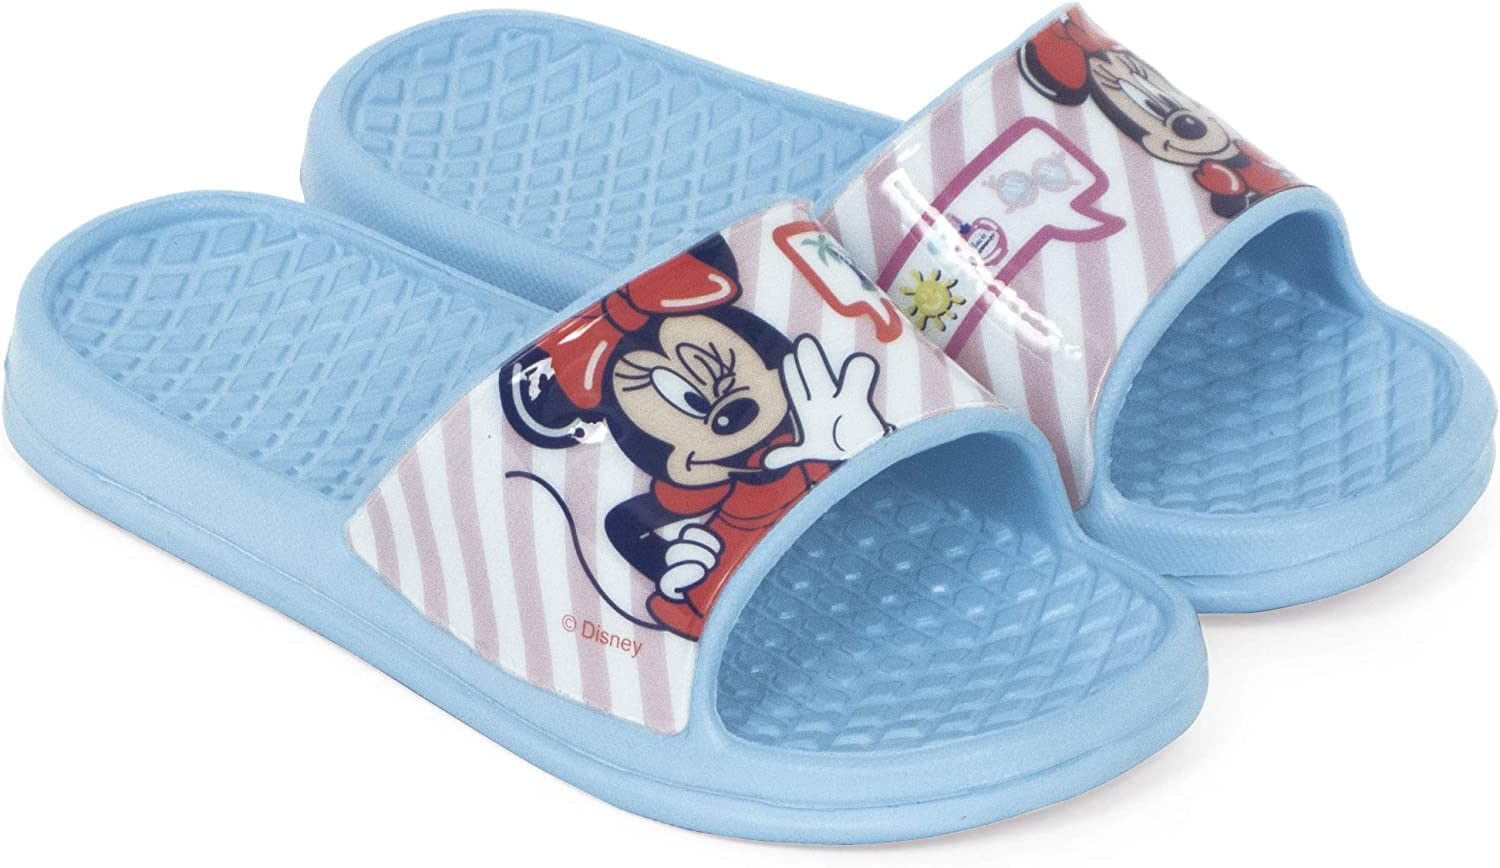 Chanclas Minnie Mouse para Playa o Piscina - Flip-Flop Minnie Mouse Disney para niñas